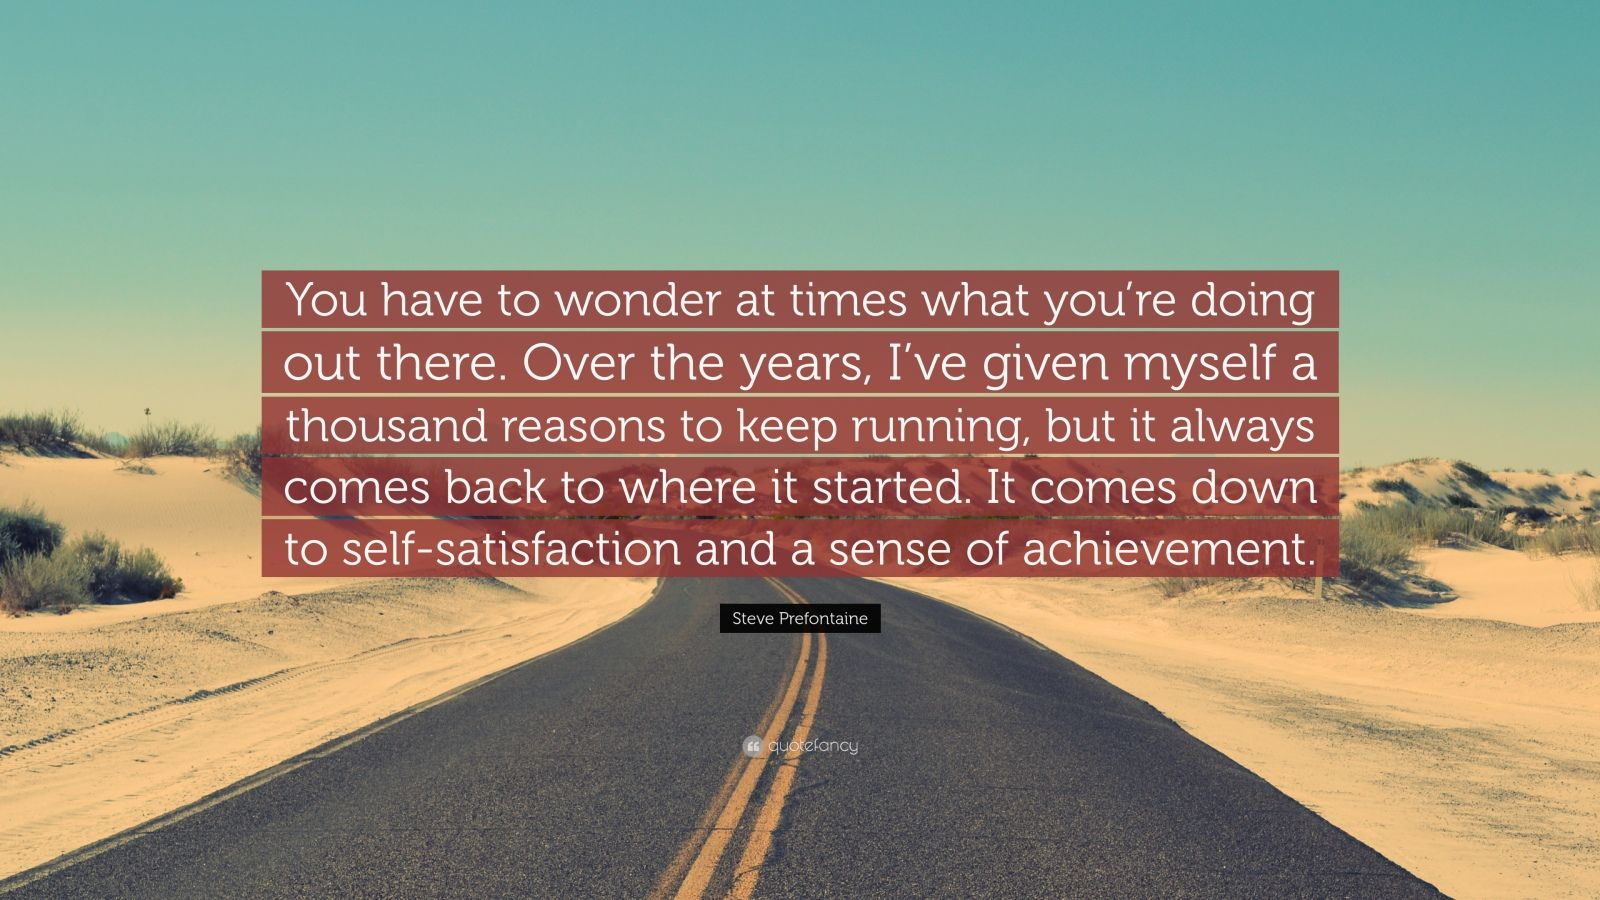 """Steve Prefontaine Quote: """"You have to wonder at times what you're doing out there. Over the years, I've given myself a thousand reasons to keep running, but it always comes back to where it started. It comes down to self-satisfaction and a sense of achievement."""""""